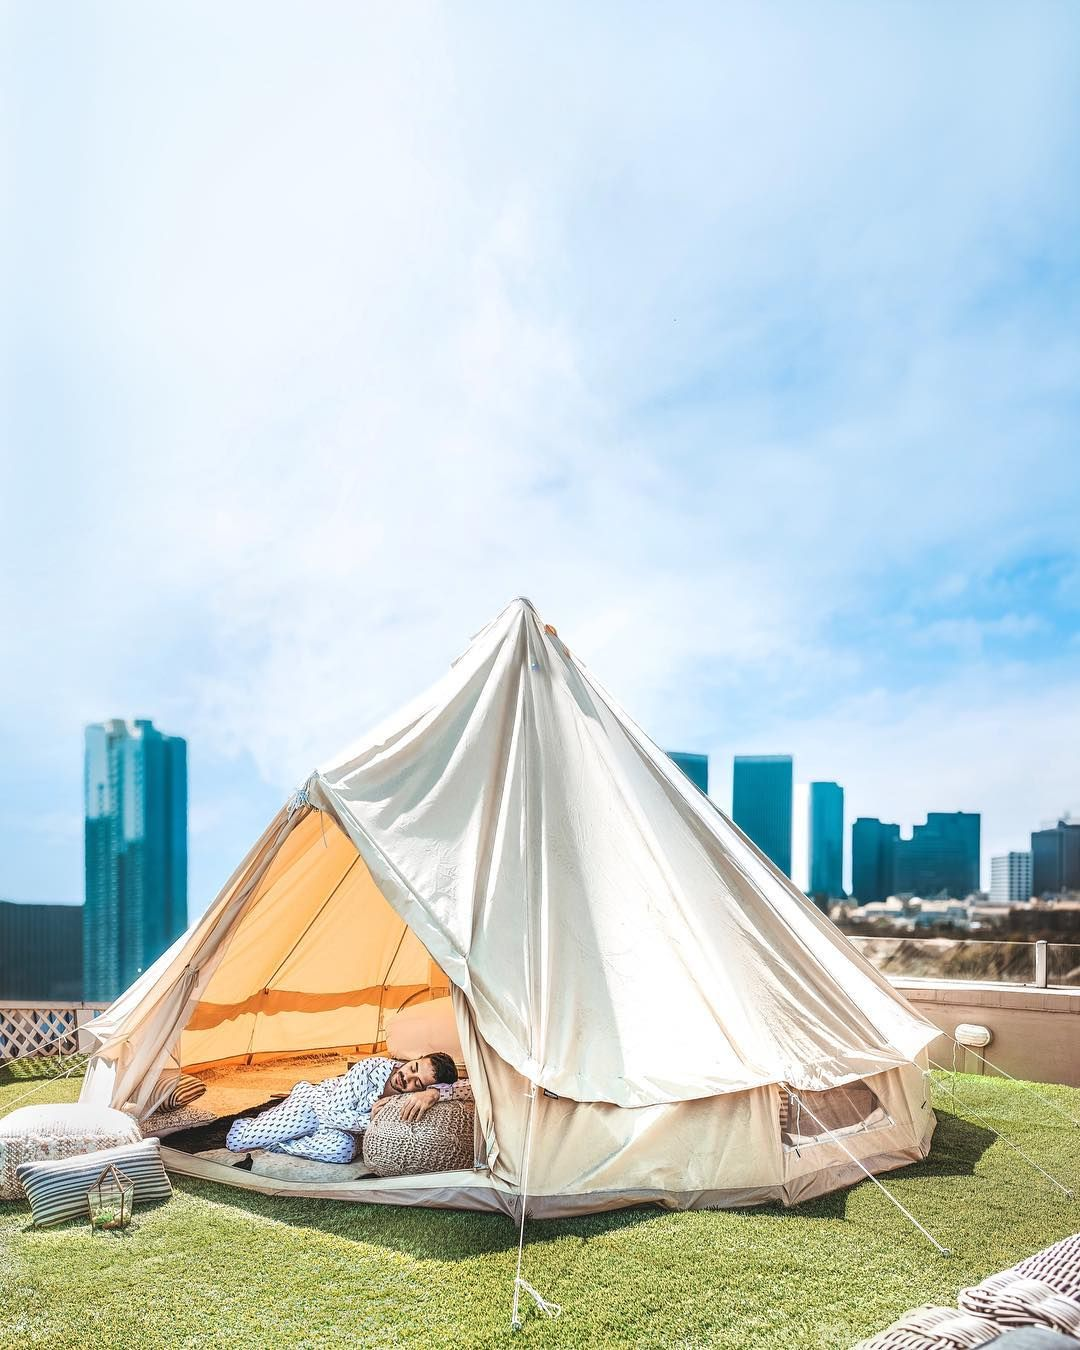 Every Glamping Spot That Needs to Be on Your Radar for 2019   We're excited about a lot of tented campsites this summer, from a luxurious bubble tent in the Maldives to a Bedouin safari camp in Wadi Rum. So, grab your crew and get on out there under the stars.   Photo: @followthenap